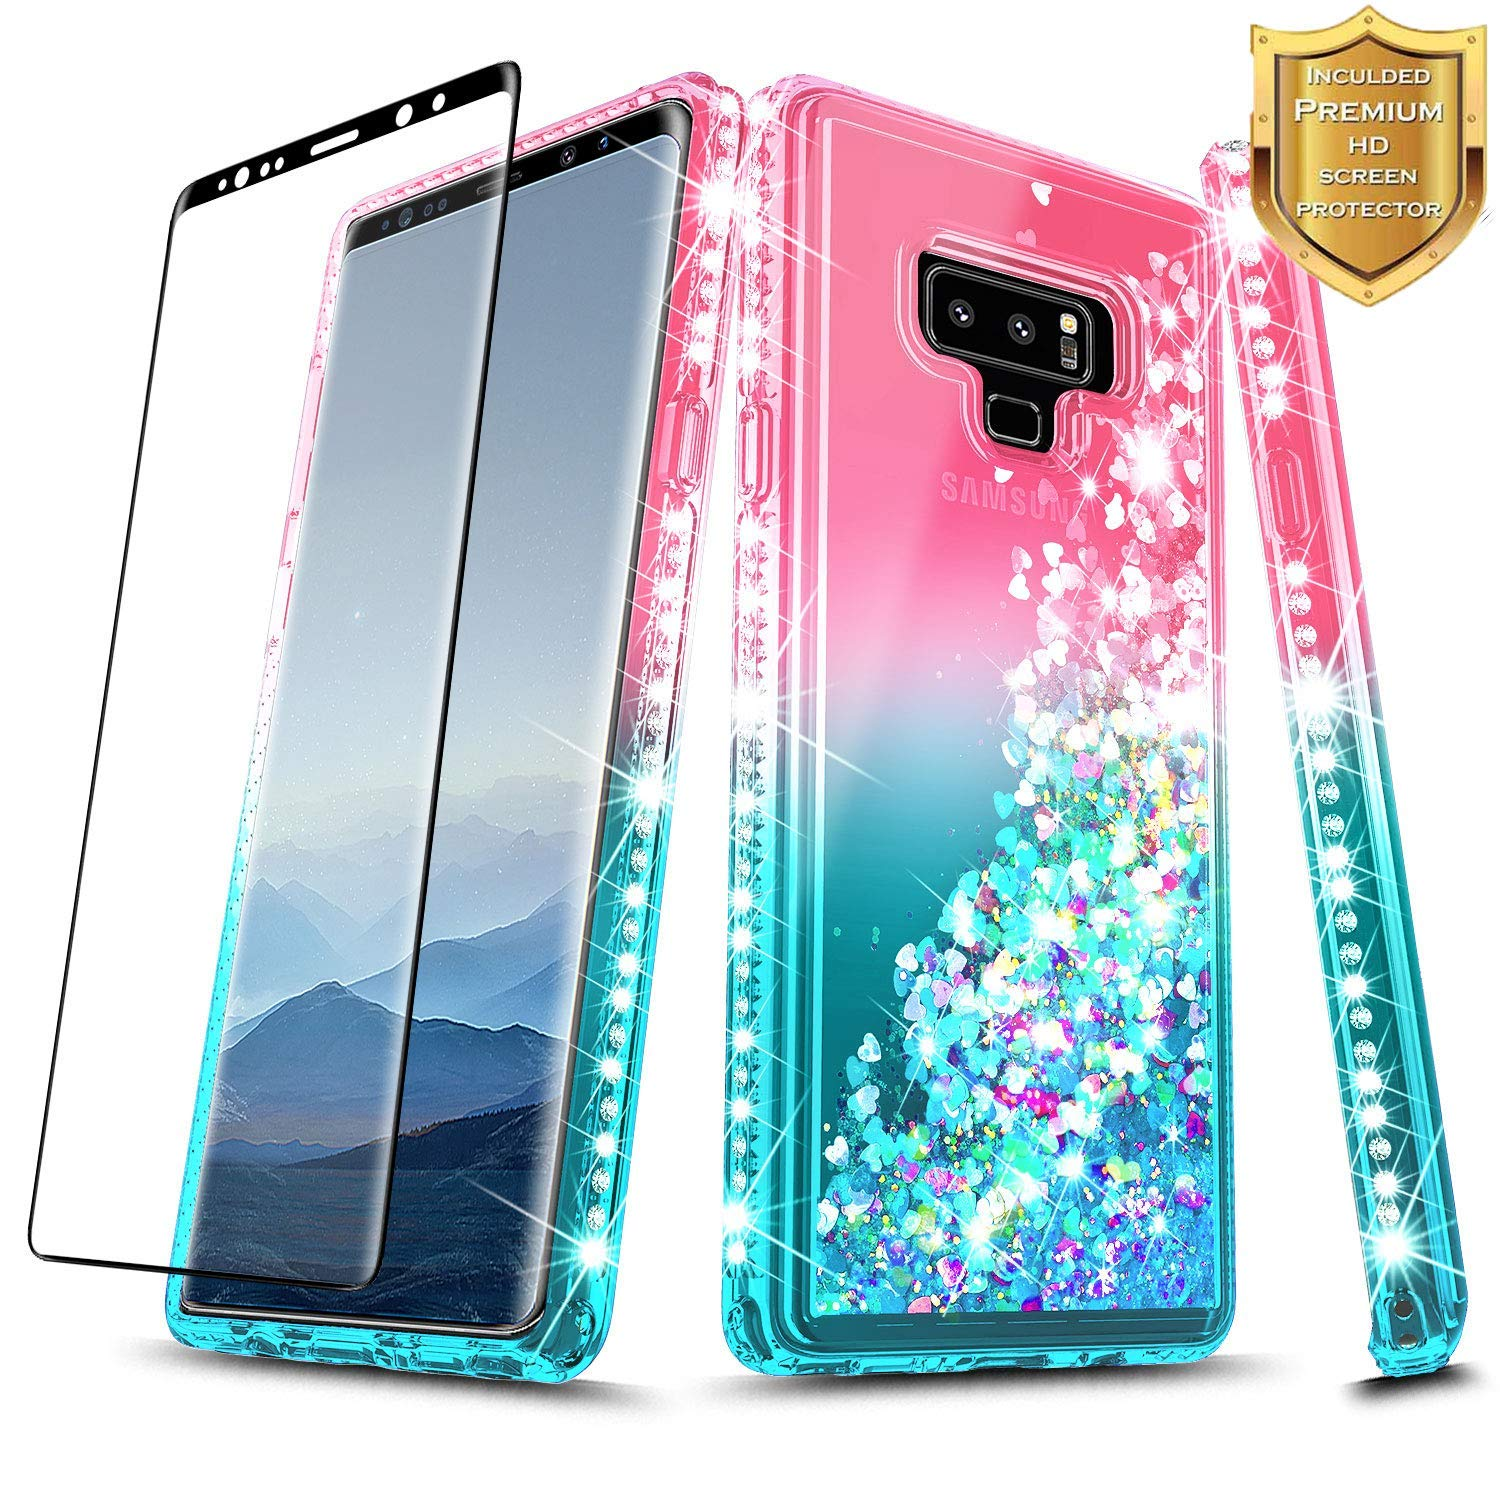 NageBee Glitter Case Compatible with Samsung Galaxy Note 9 w/[Full Cover Screen Protector 3D PET] Liquid Quicksand Waterfall Floating Flowing Sparkle Shiny Bling Diamond Girls Cute Case -Pink/Aqua